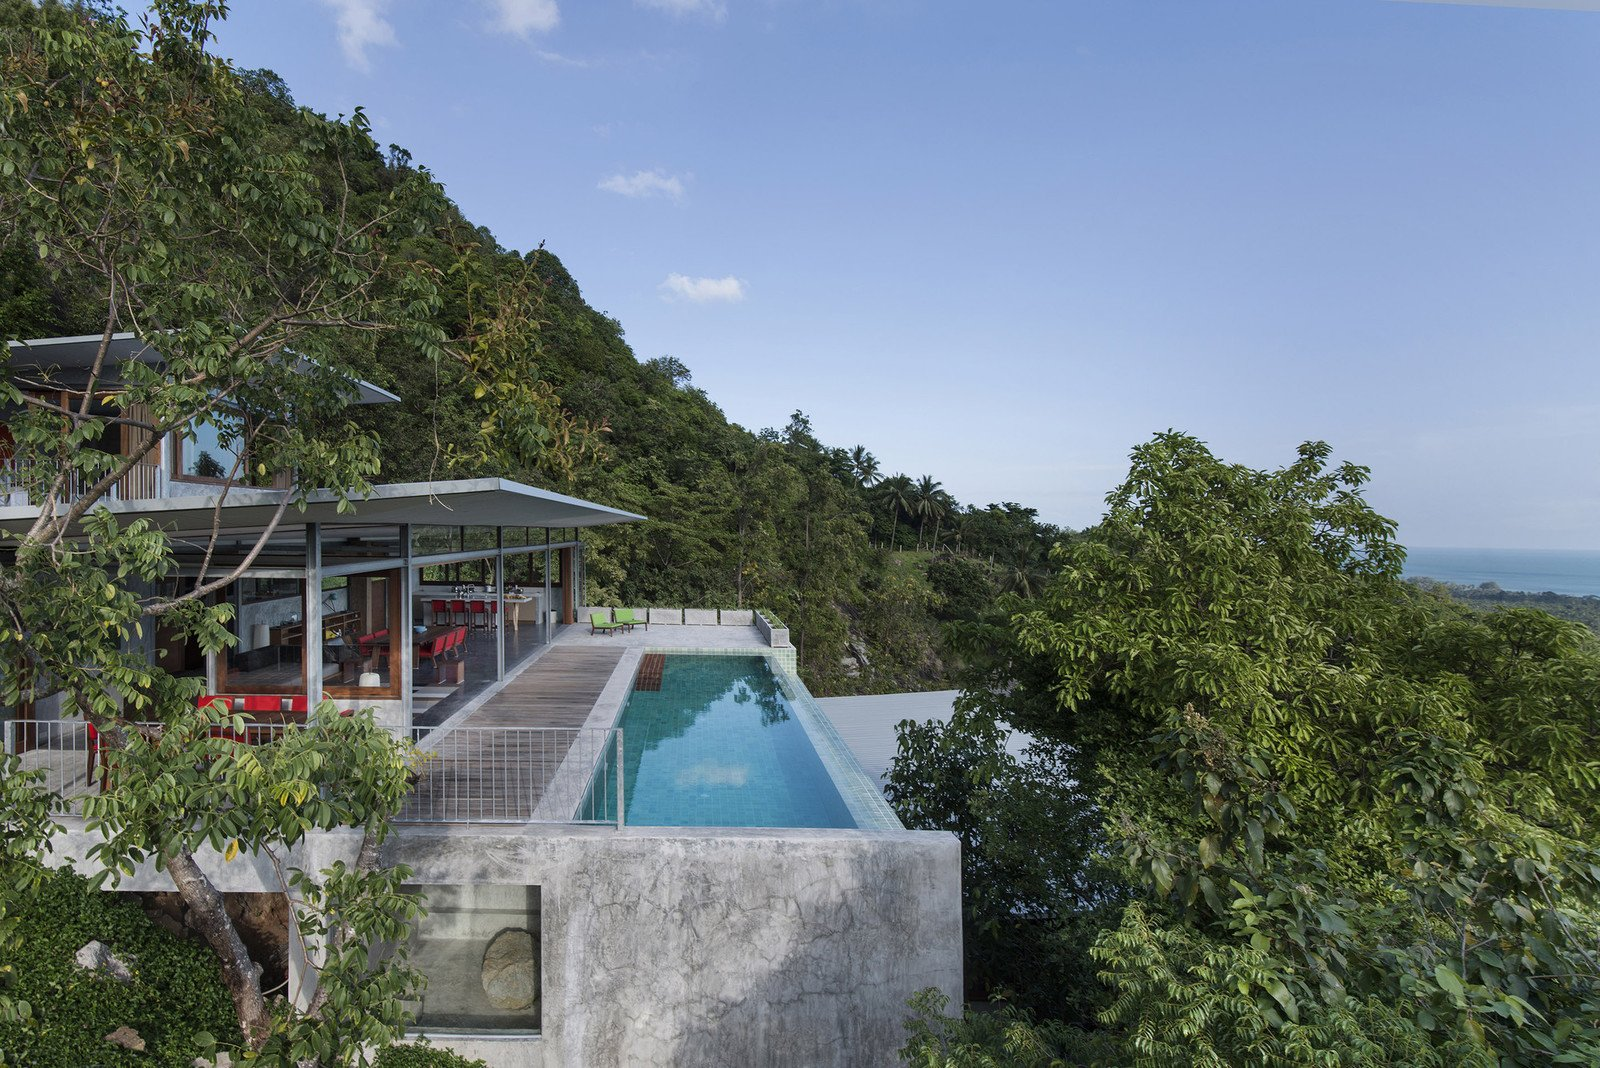 Tagged: Infinity Pools, Tubs, Shower, Wood Patio, Porch, Deck, Trees, Back Yard, Metal Fences, Wall, and Outdoor.  Photo 5 of 11 in Take a Trip to This Photographer-Designed Concrete Home in Thailand